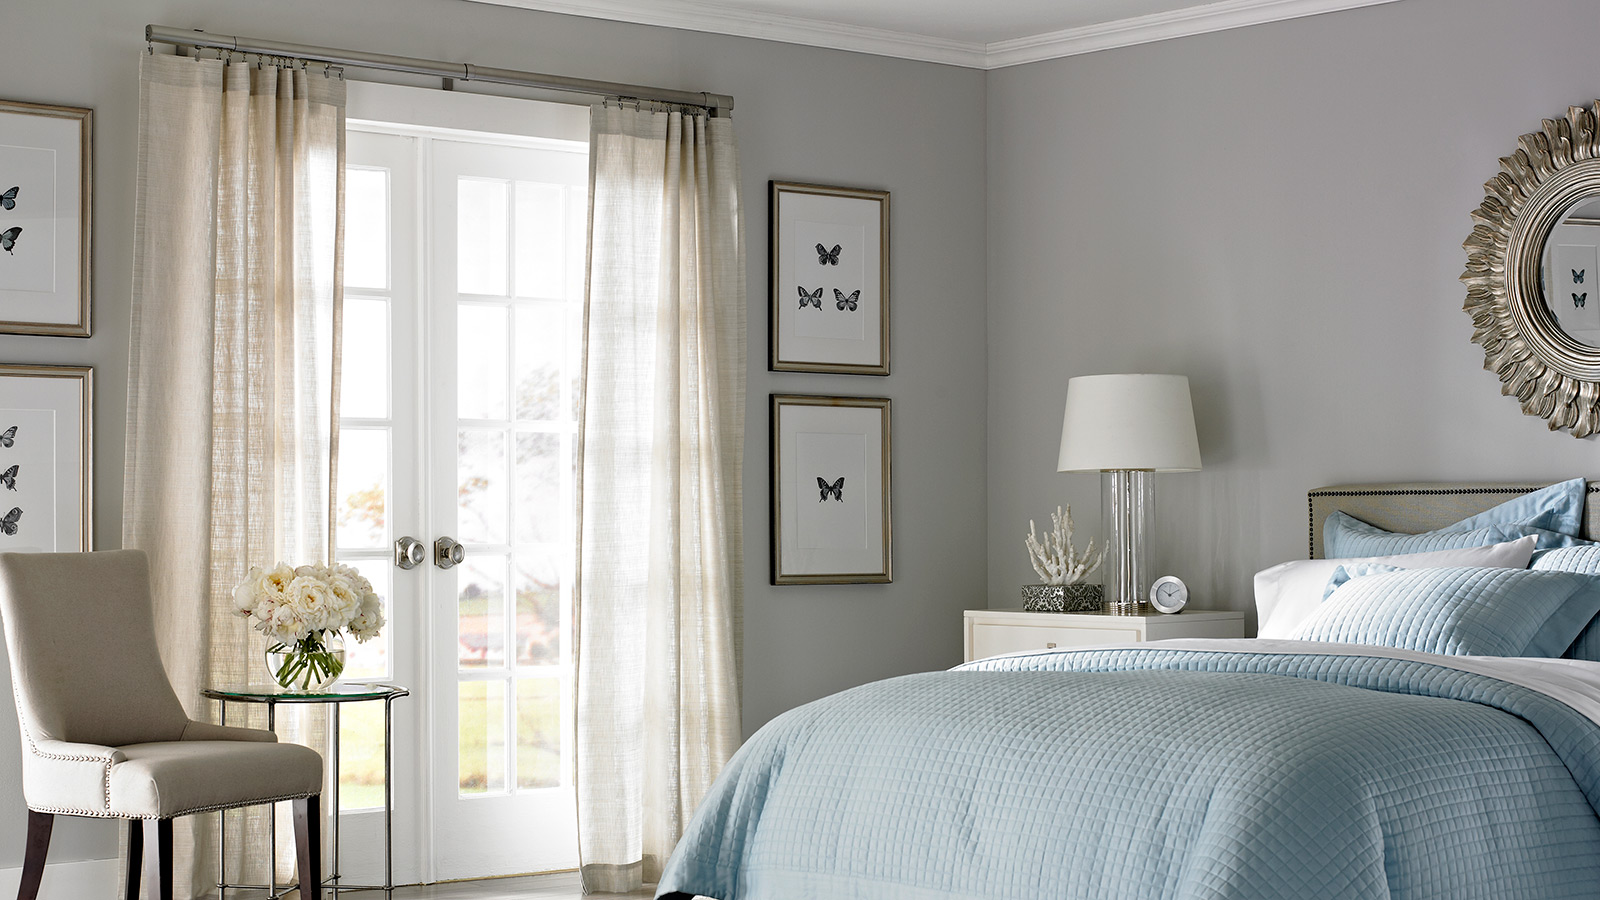 in match drapes custom accent las matching draperies drapery vegas to room blue motorized